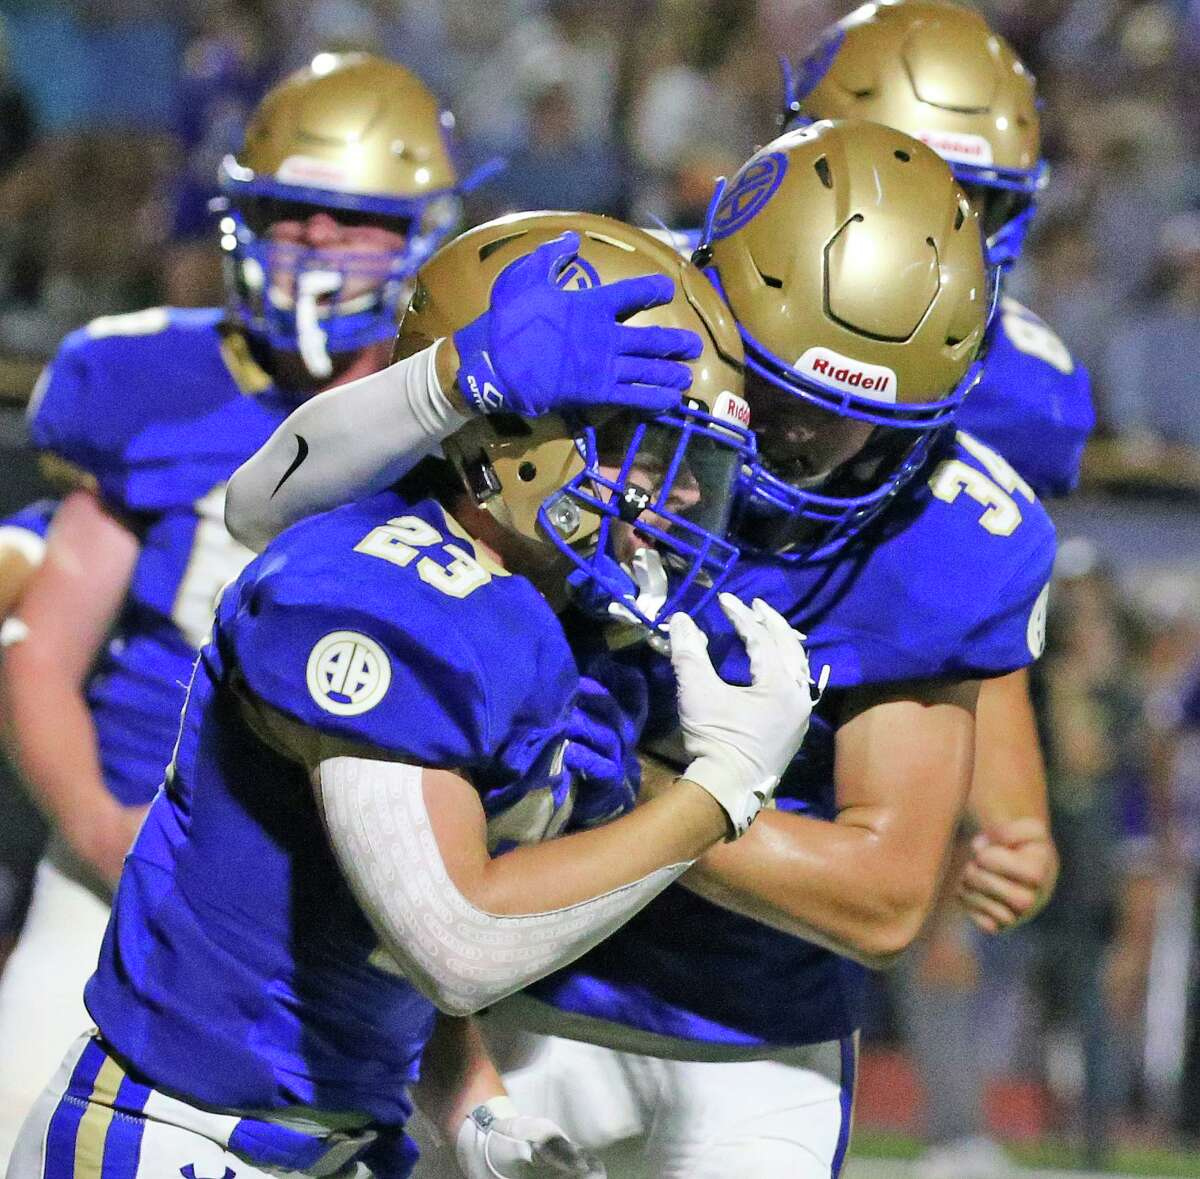 Running back George Flesher (23) and Alamo Heights will be looking to record the school's first 3-0 start since 2018 - when it opened 7-0 - on Friday.